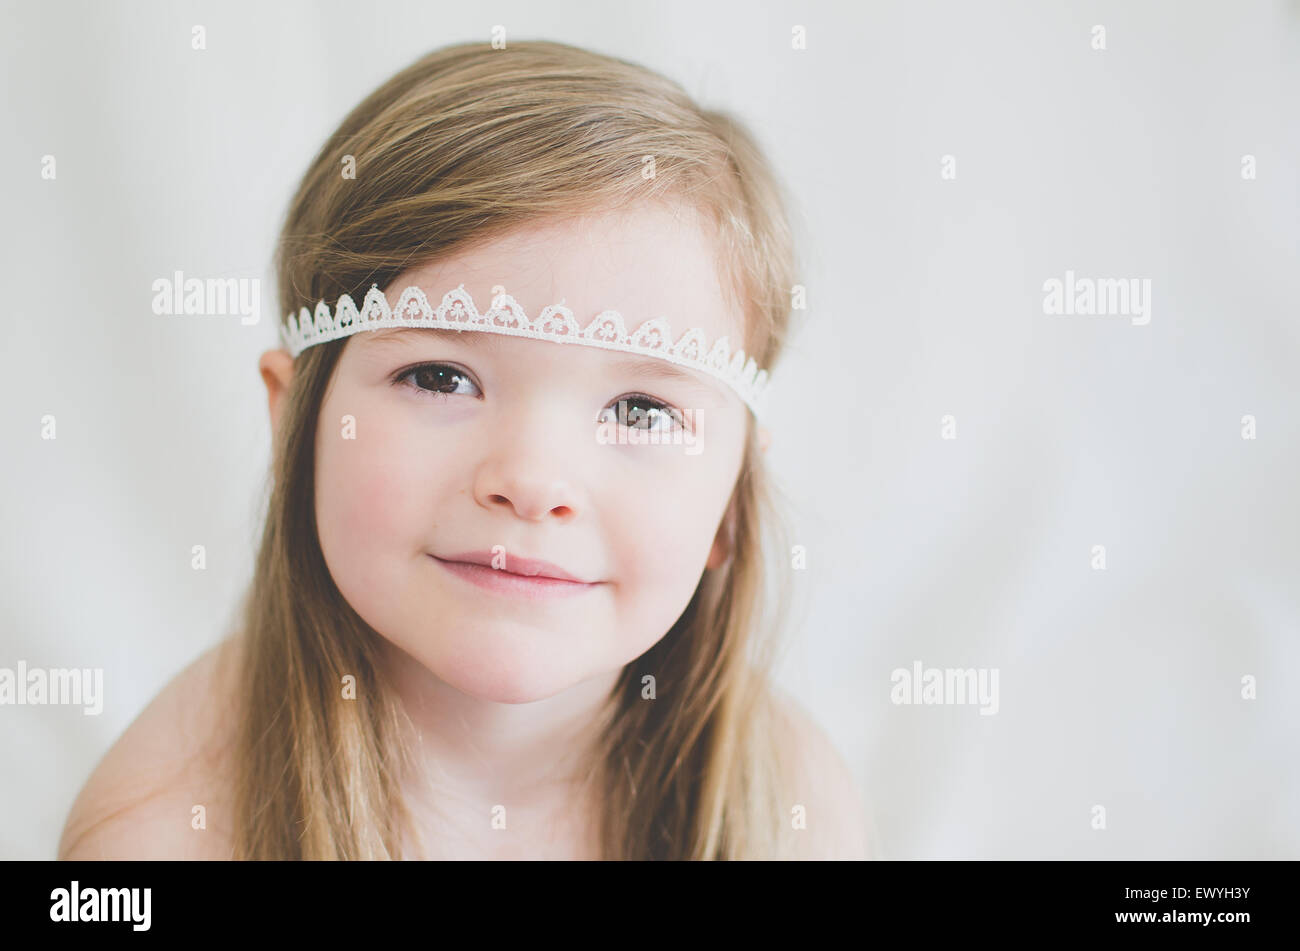 Portrait of a girl wearing a lace headband - Stock Image